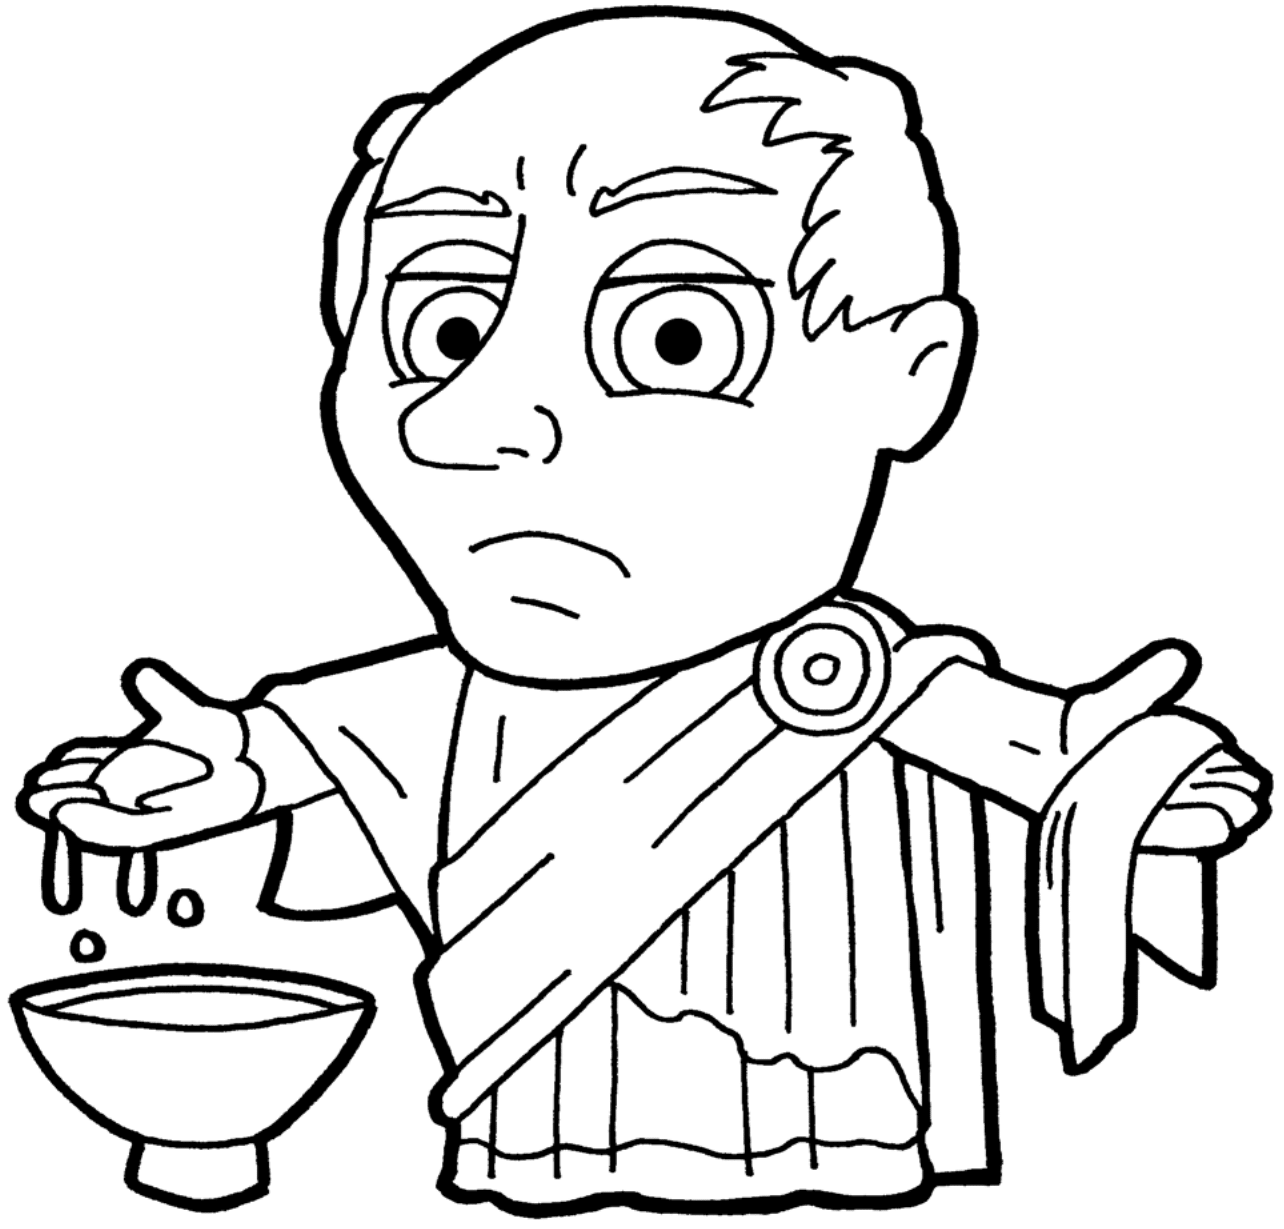 Clipart Pilate BW-1